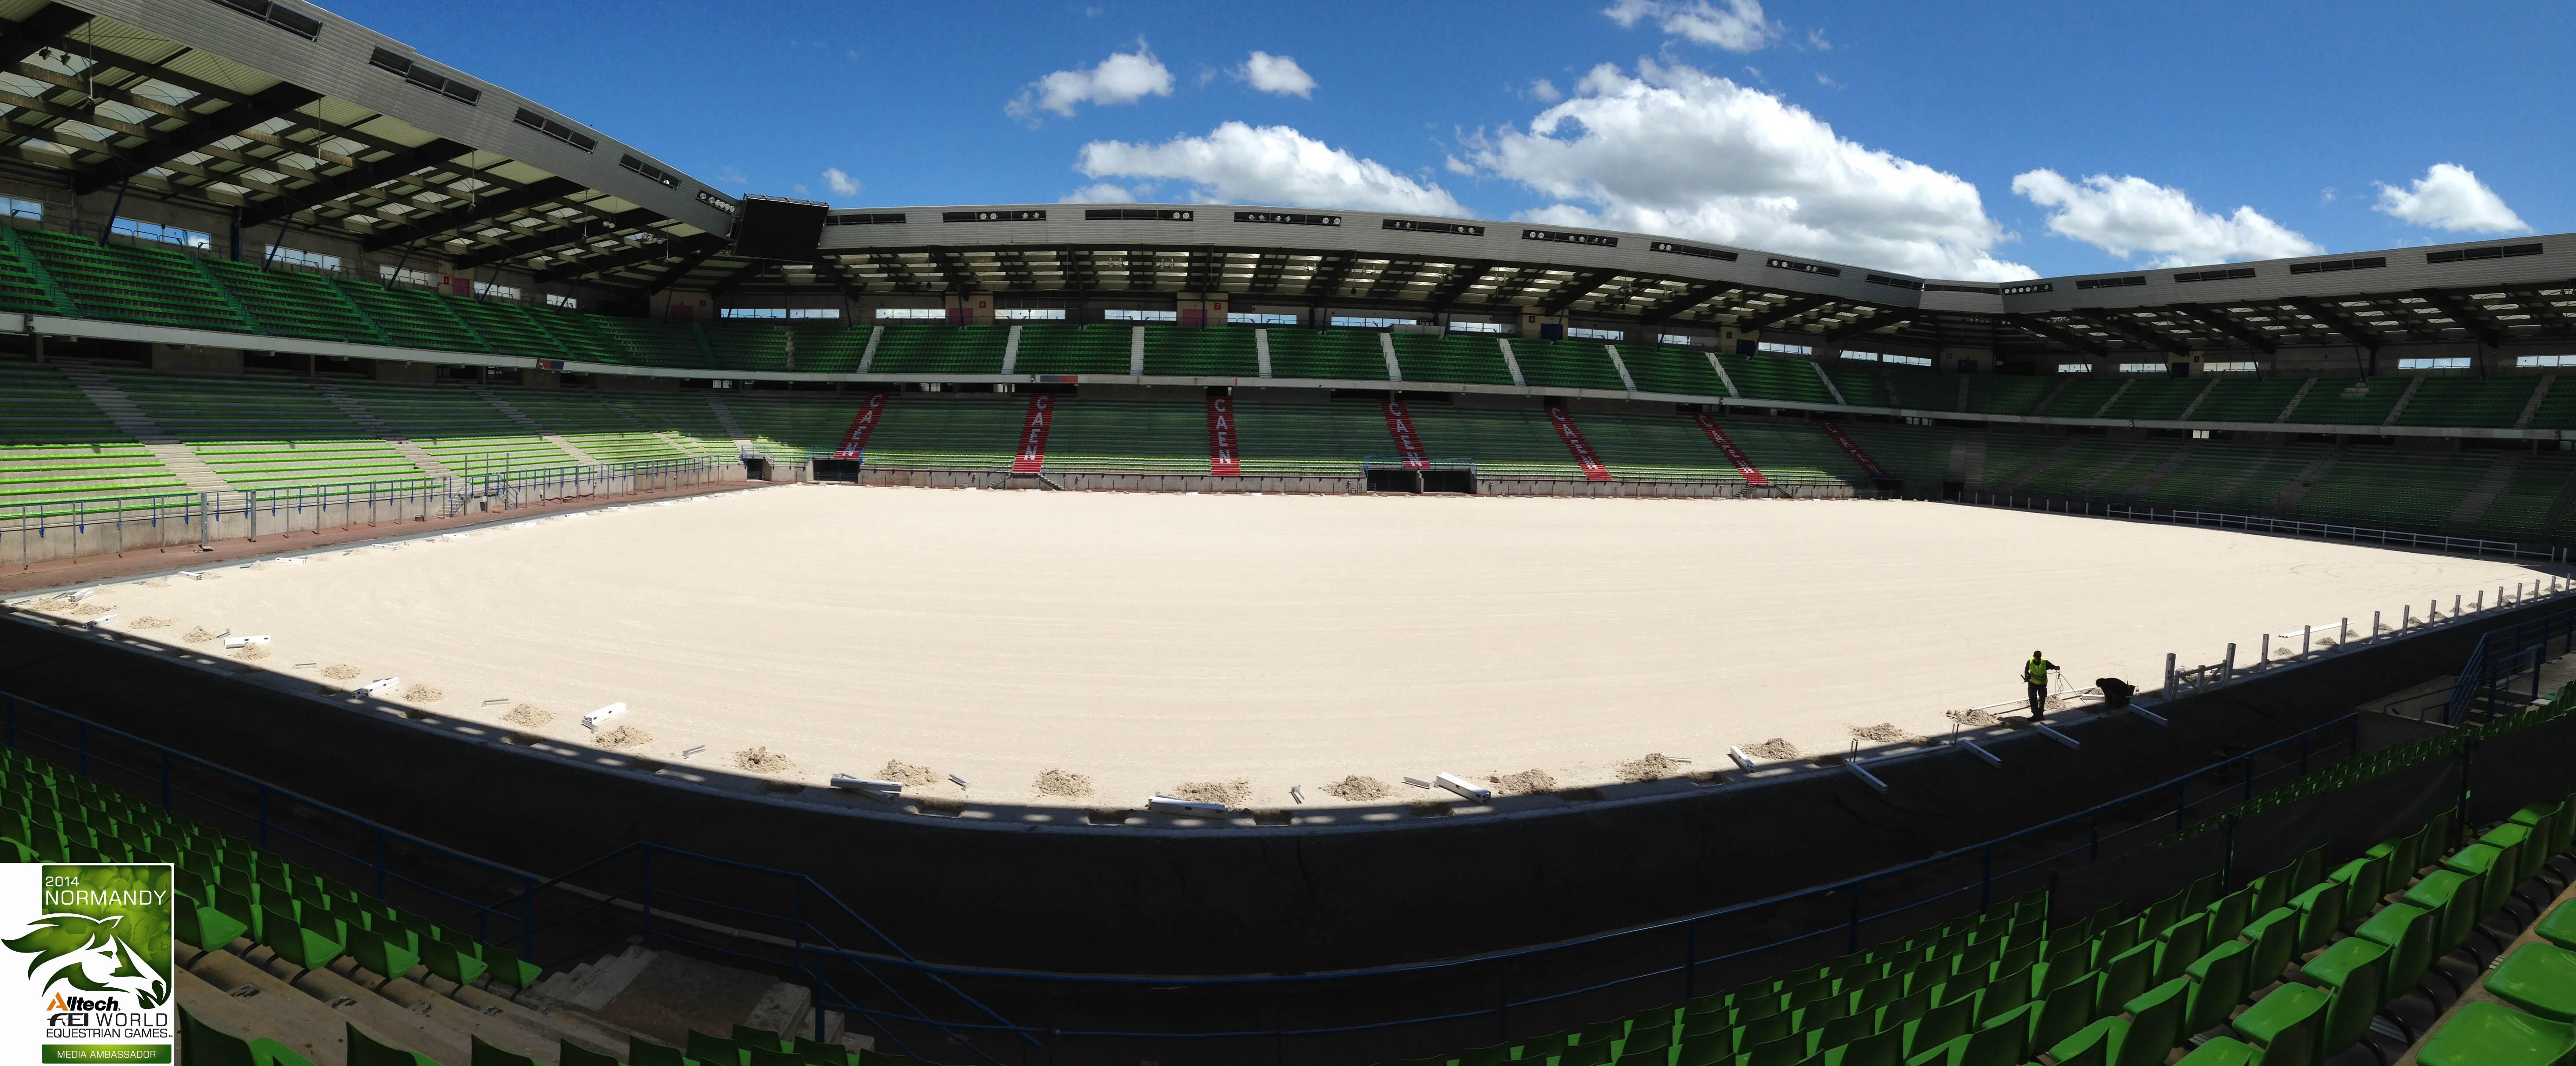 EEF :News :TEST EVENTS FOR THE ALLTECH FEI WORLD EQUESTRIAN GAMES™ 2014 IN NORMANDY